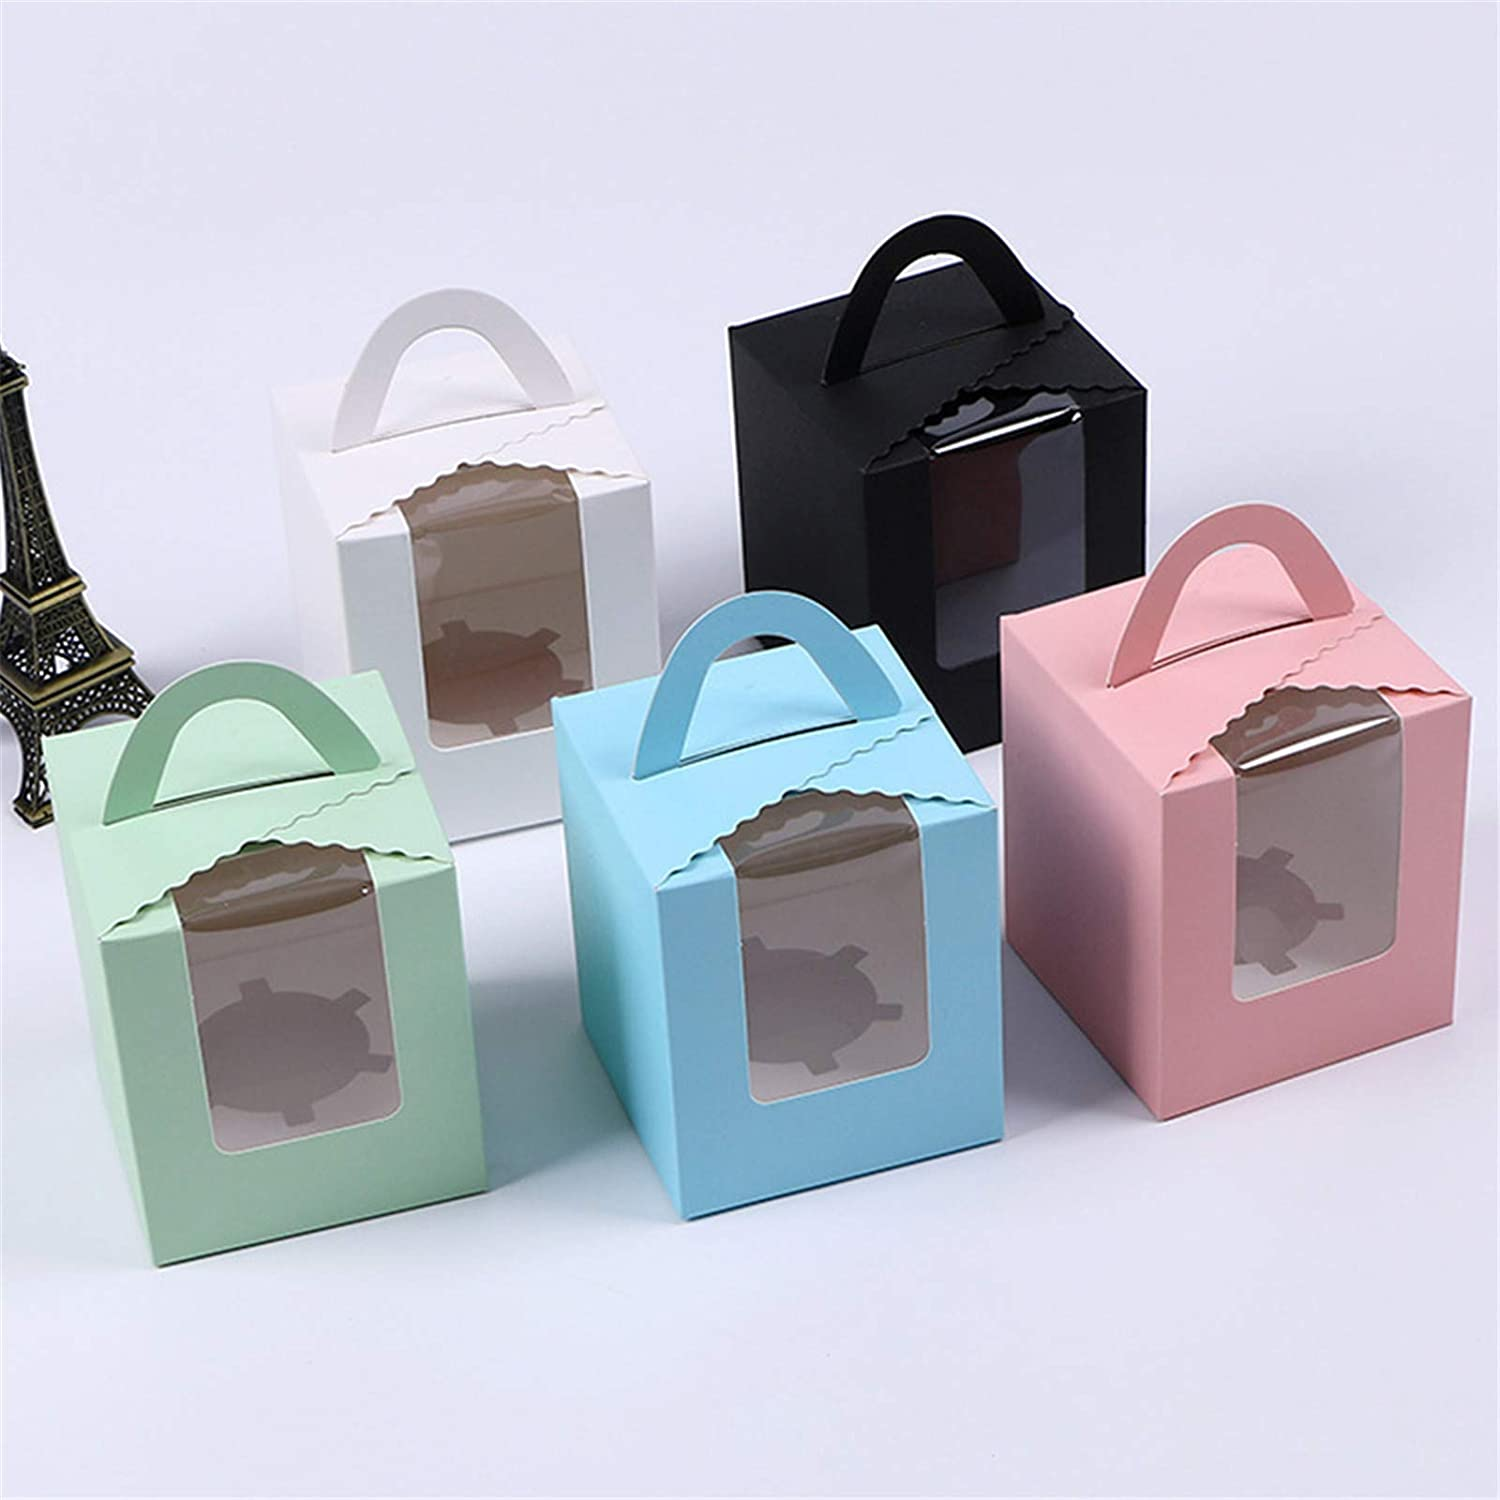 Portable Single Blue Paper Cupcake Holder Containers Carrier Blue 15Pack for Wedding Birthday Party Candy Boxes Blue Muffin Gift Boxes with Window Inserts Handle 15 Pcs Individual Cupcakes Boxes